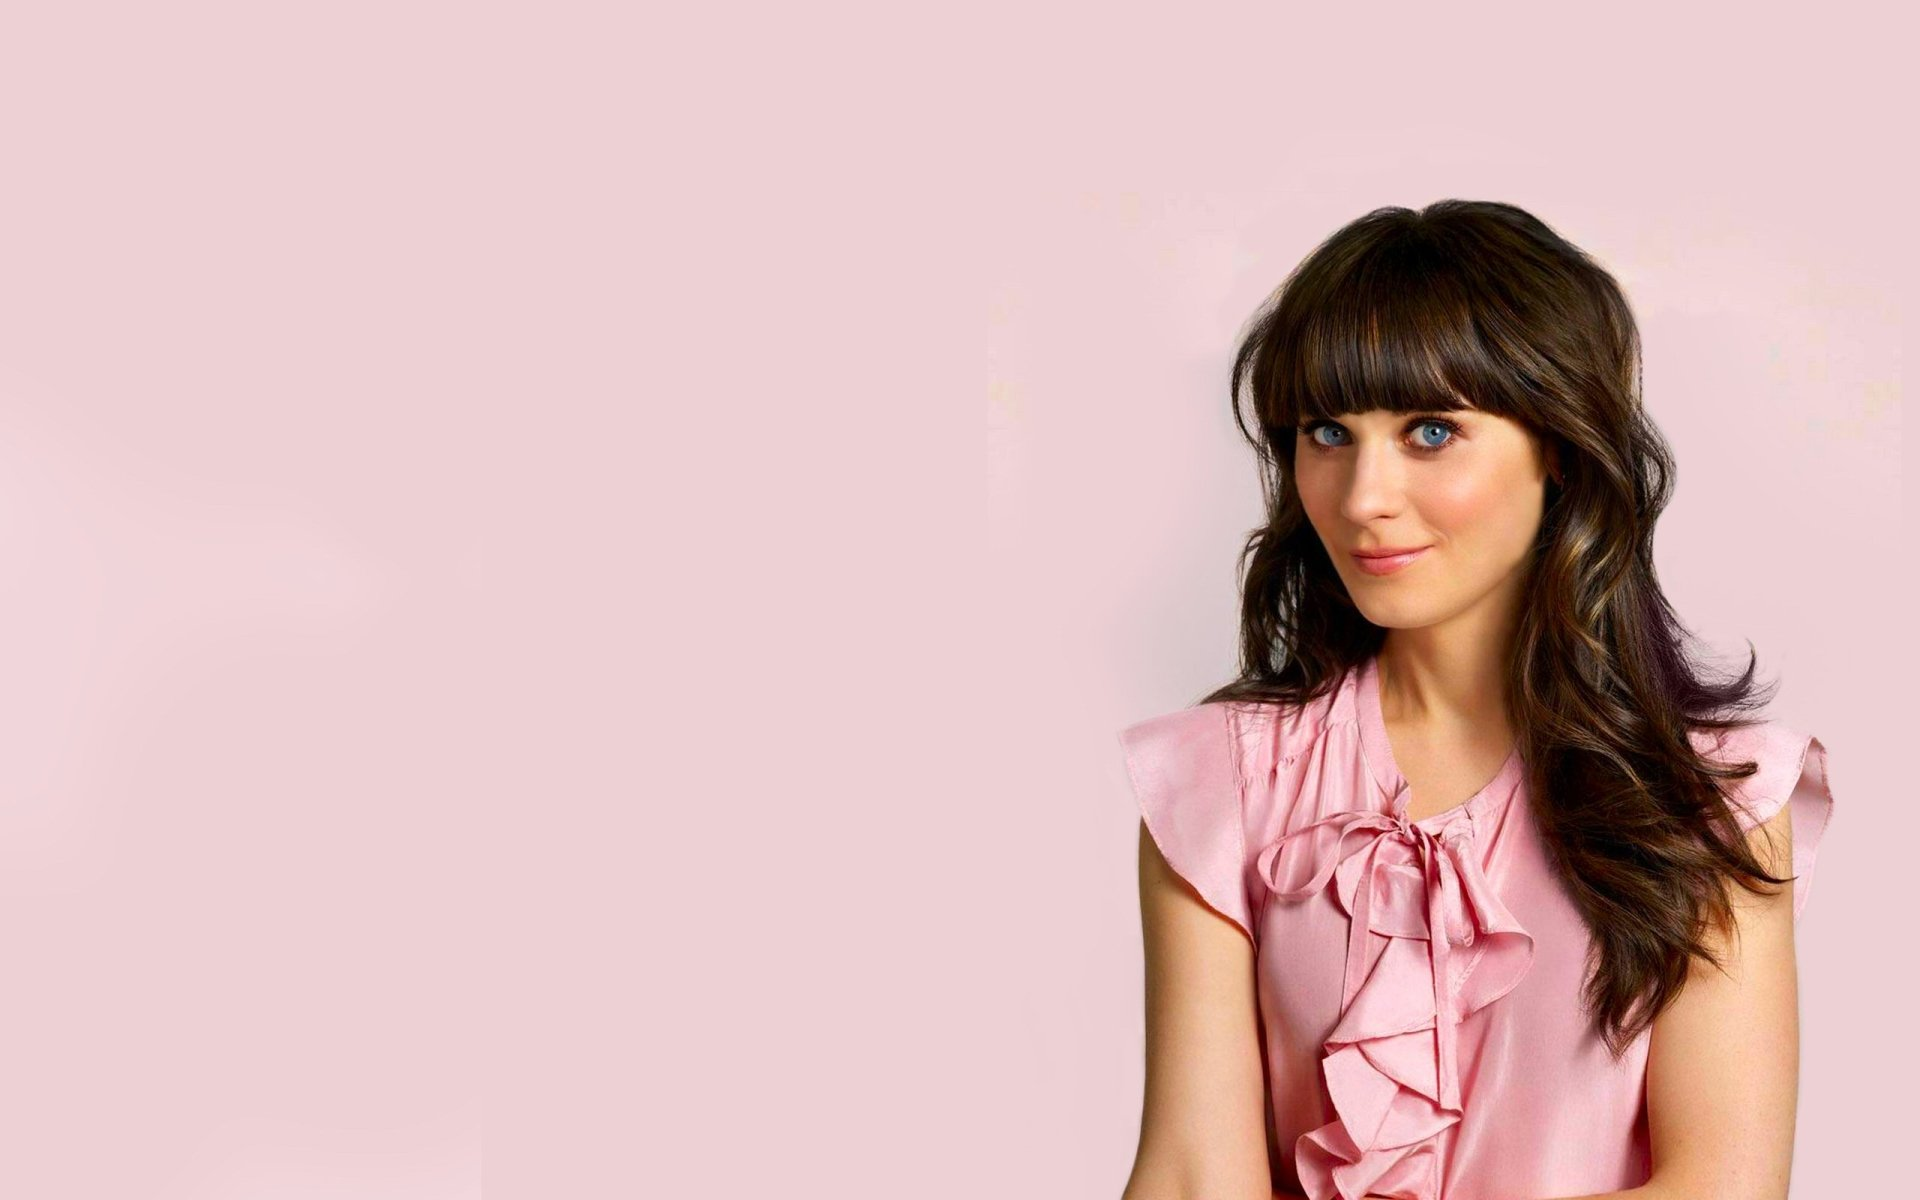 zooey deschanel hot 1920 - photo #12